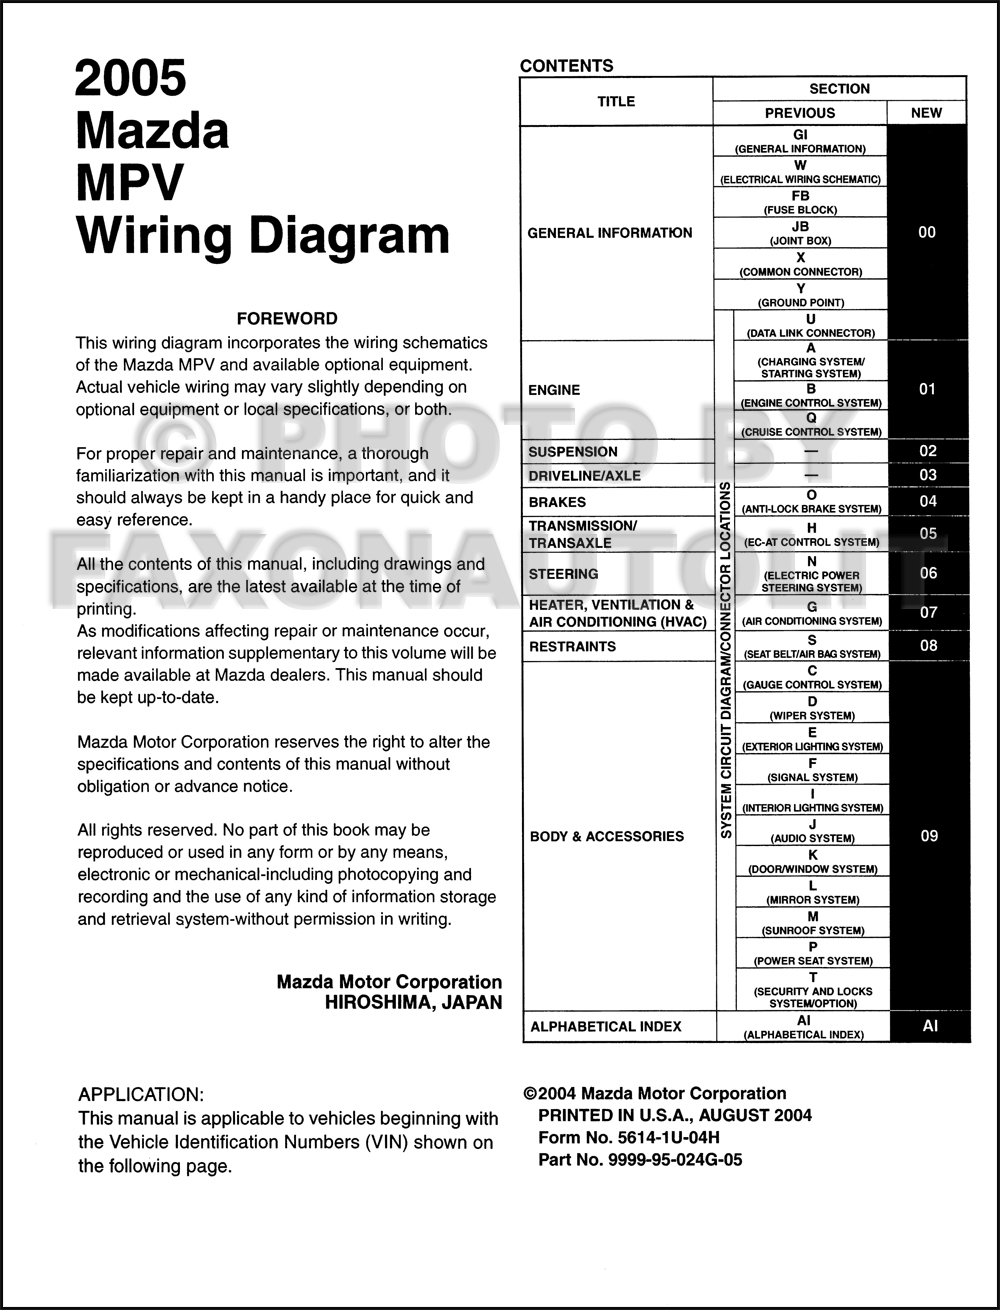 2005 Mazda MPV Wiring Diagram Manual Original. click on thumbnail to zoom